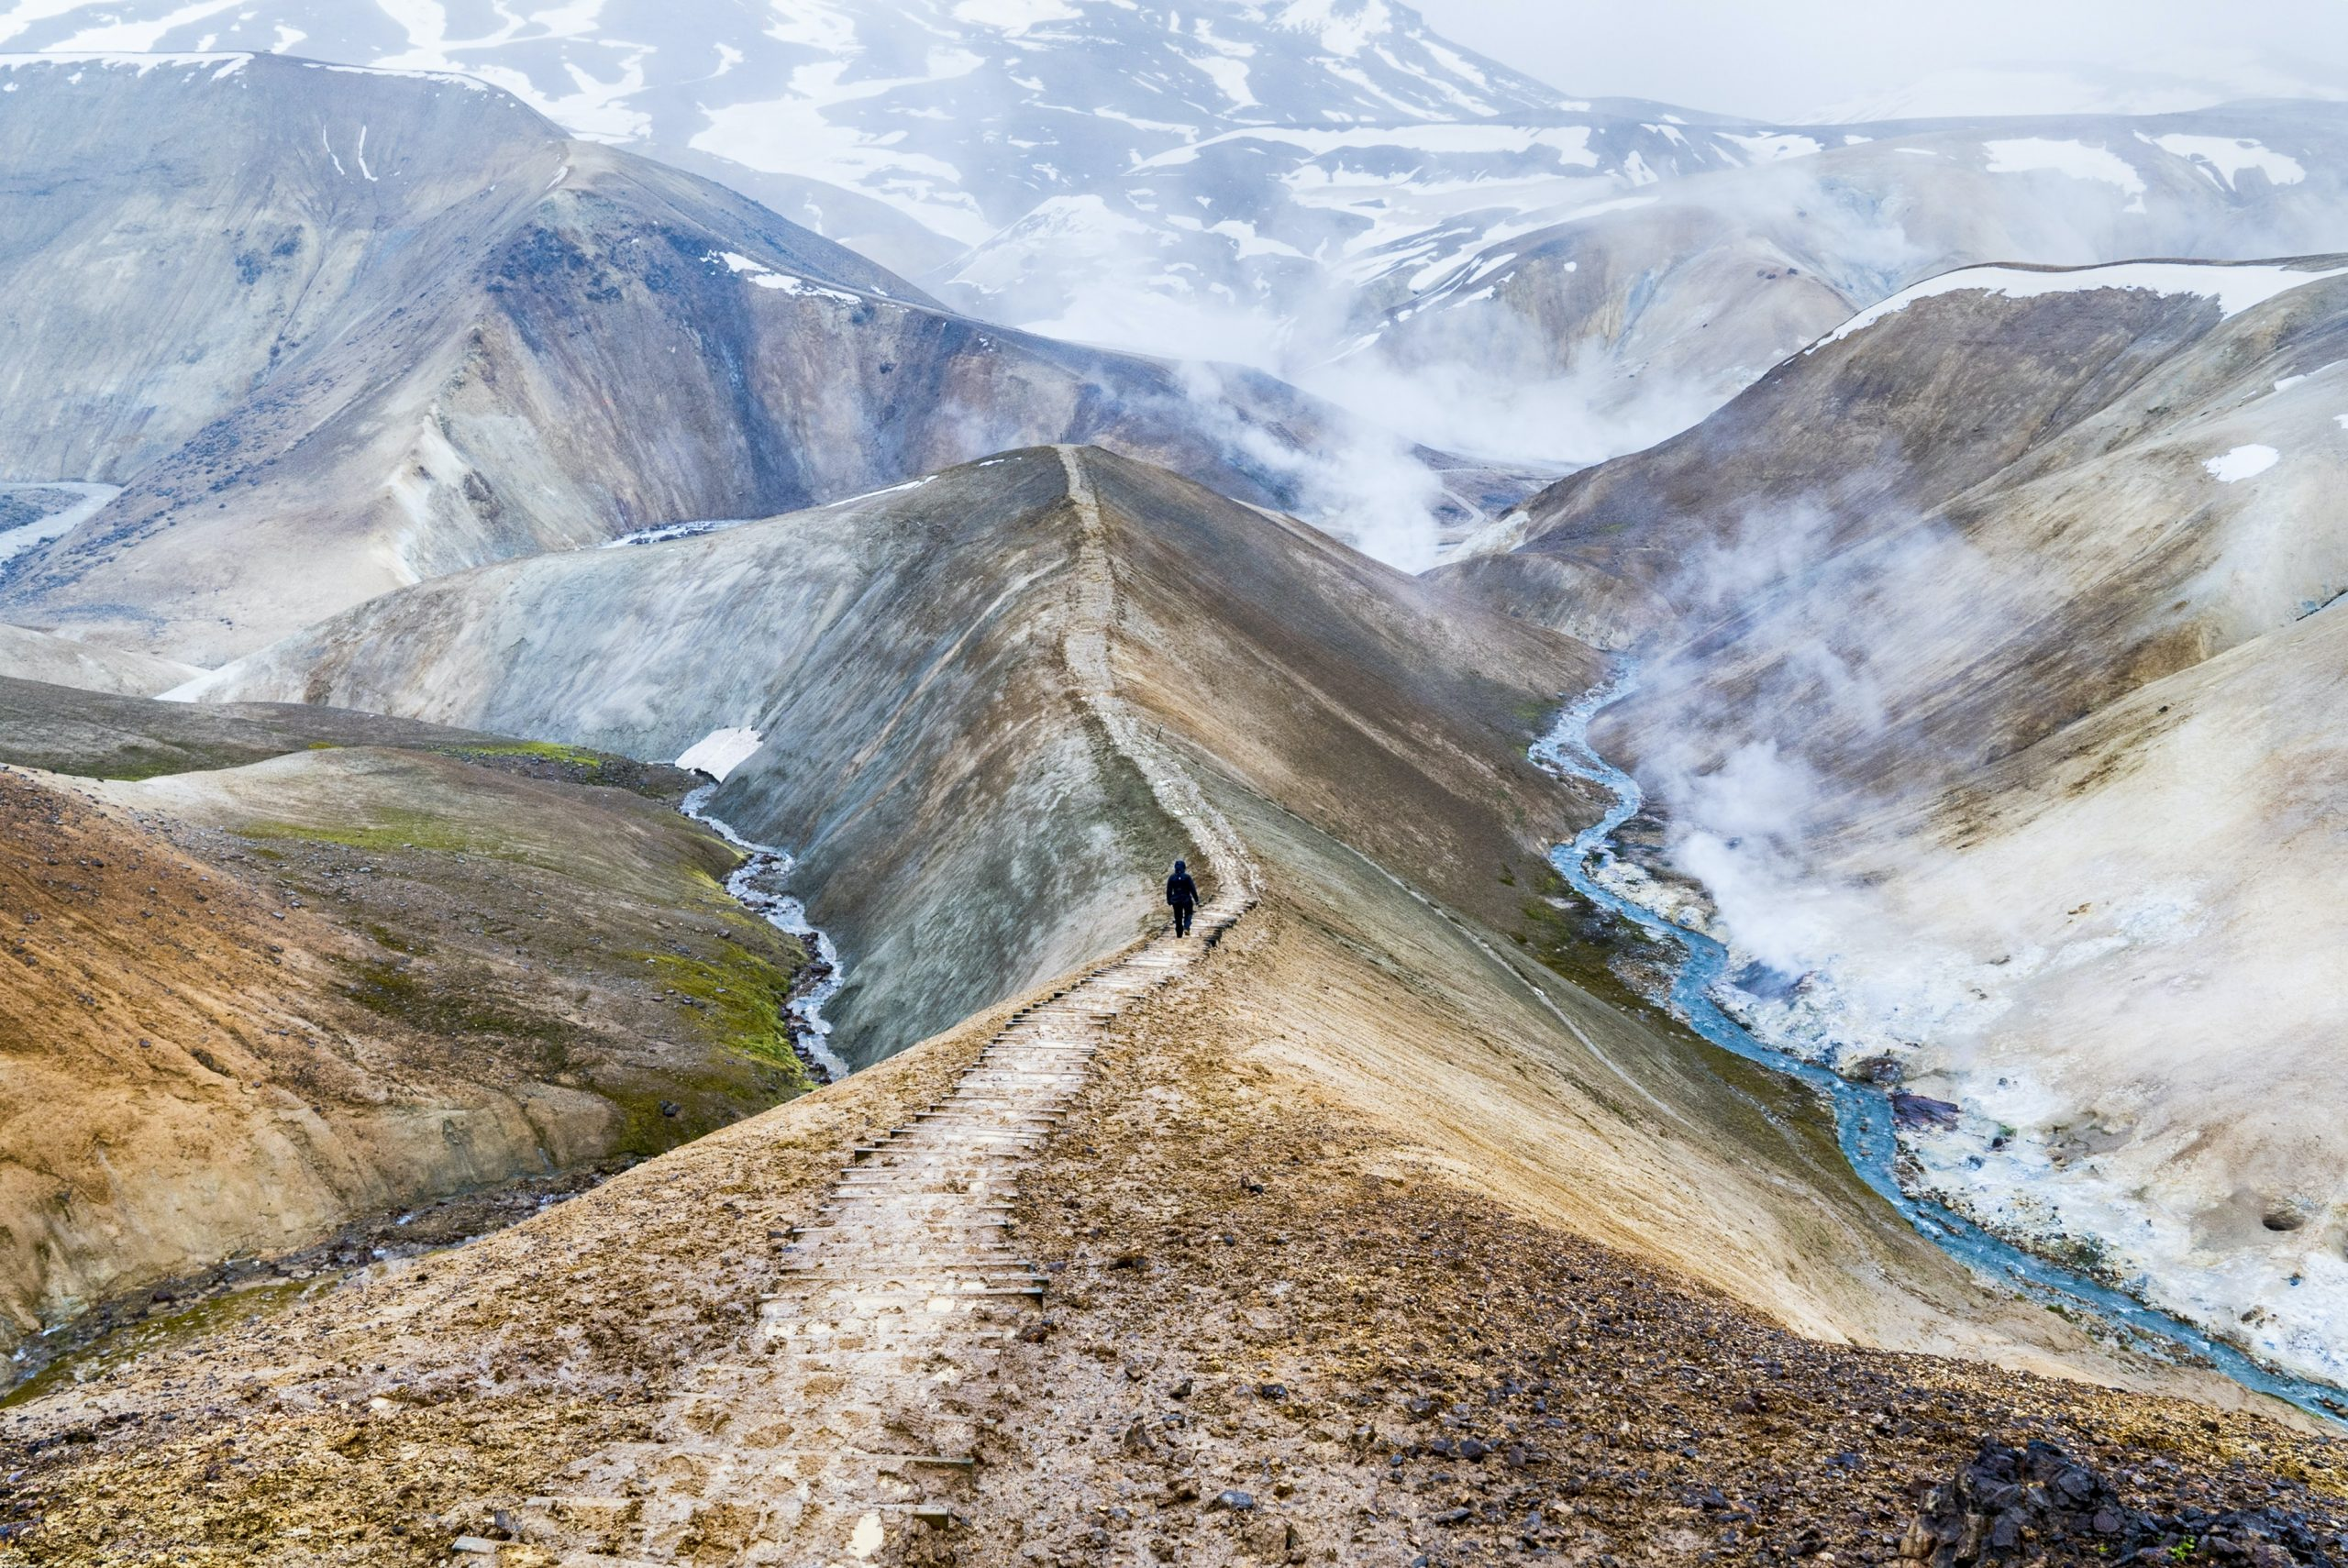 A person walking on a path in Iceland's Highlands, surrounded by steaming mountains.